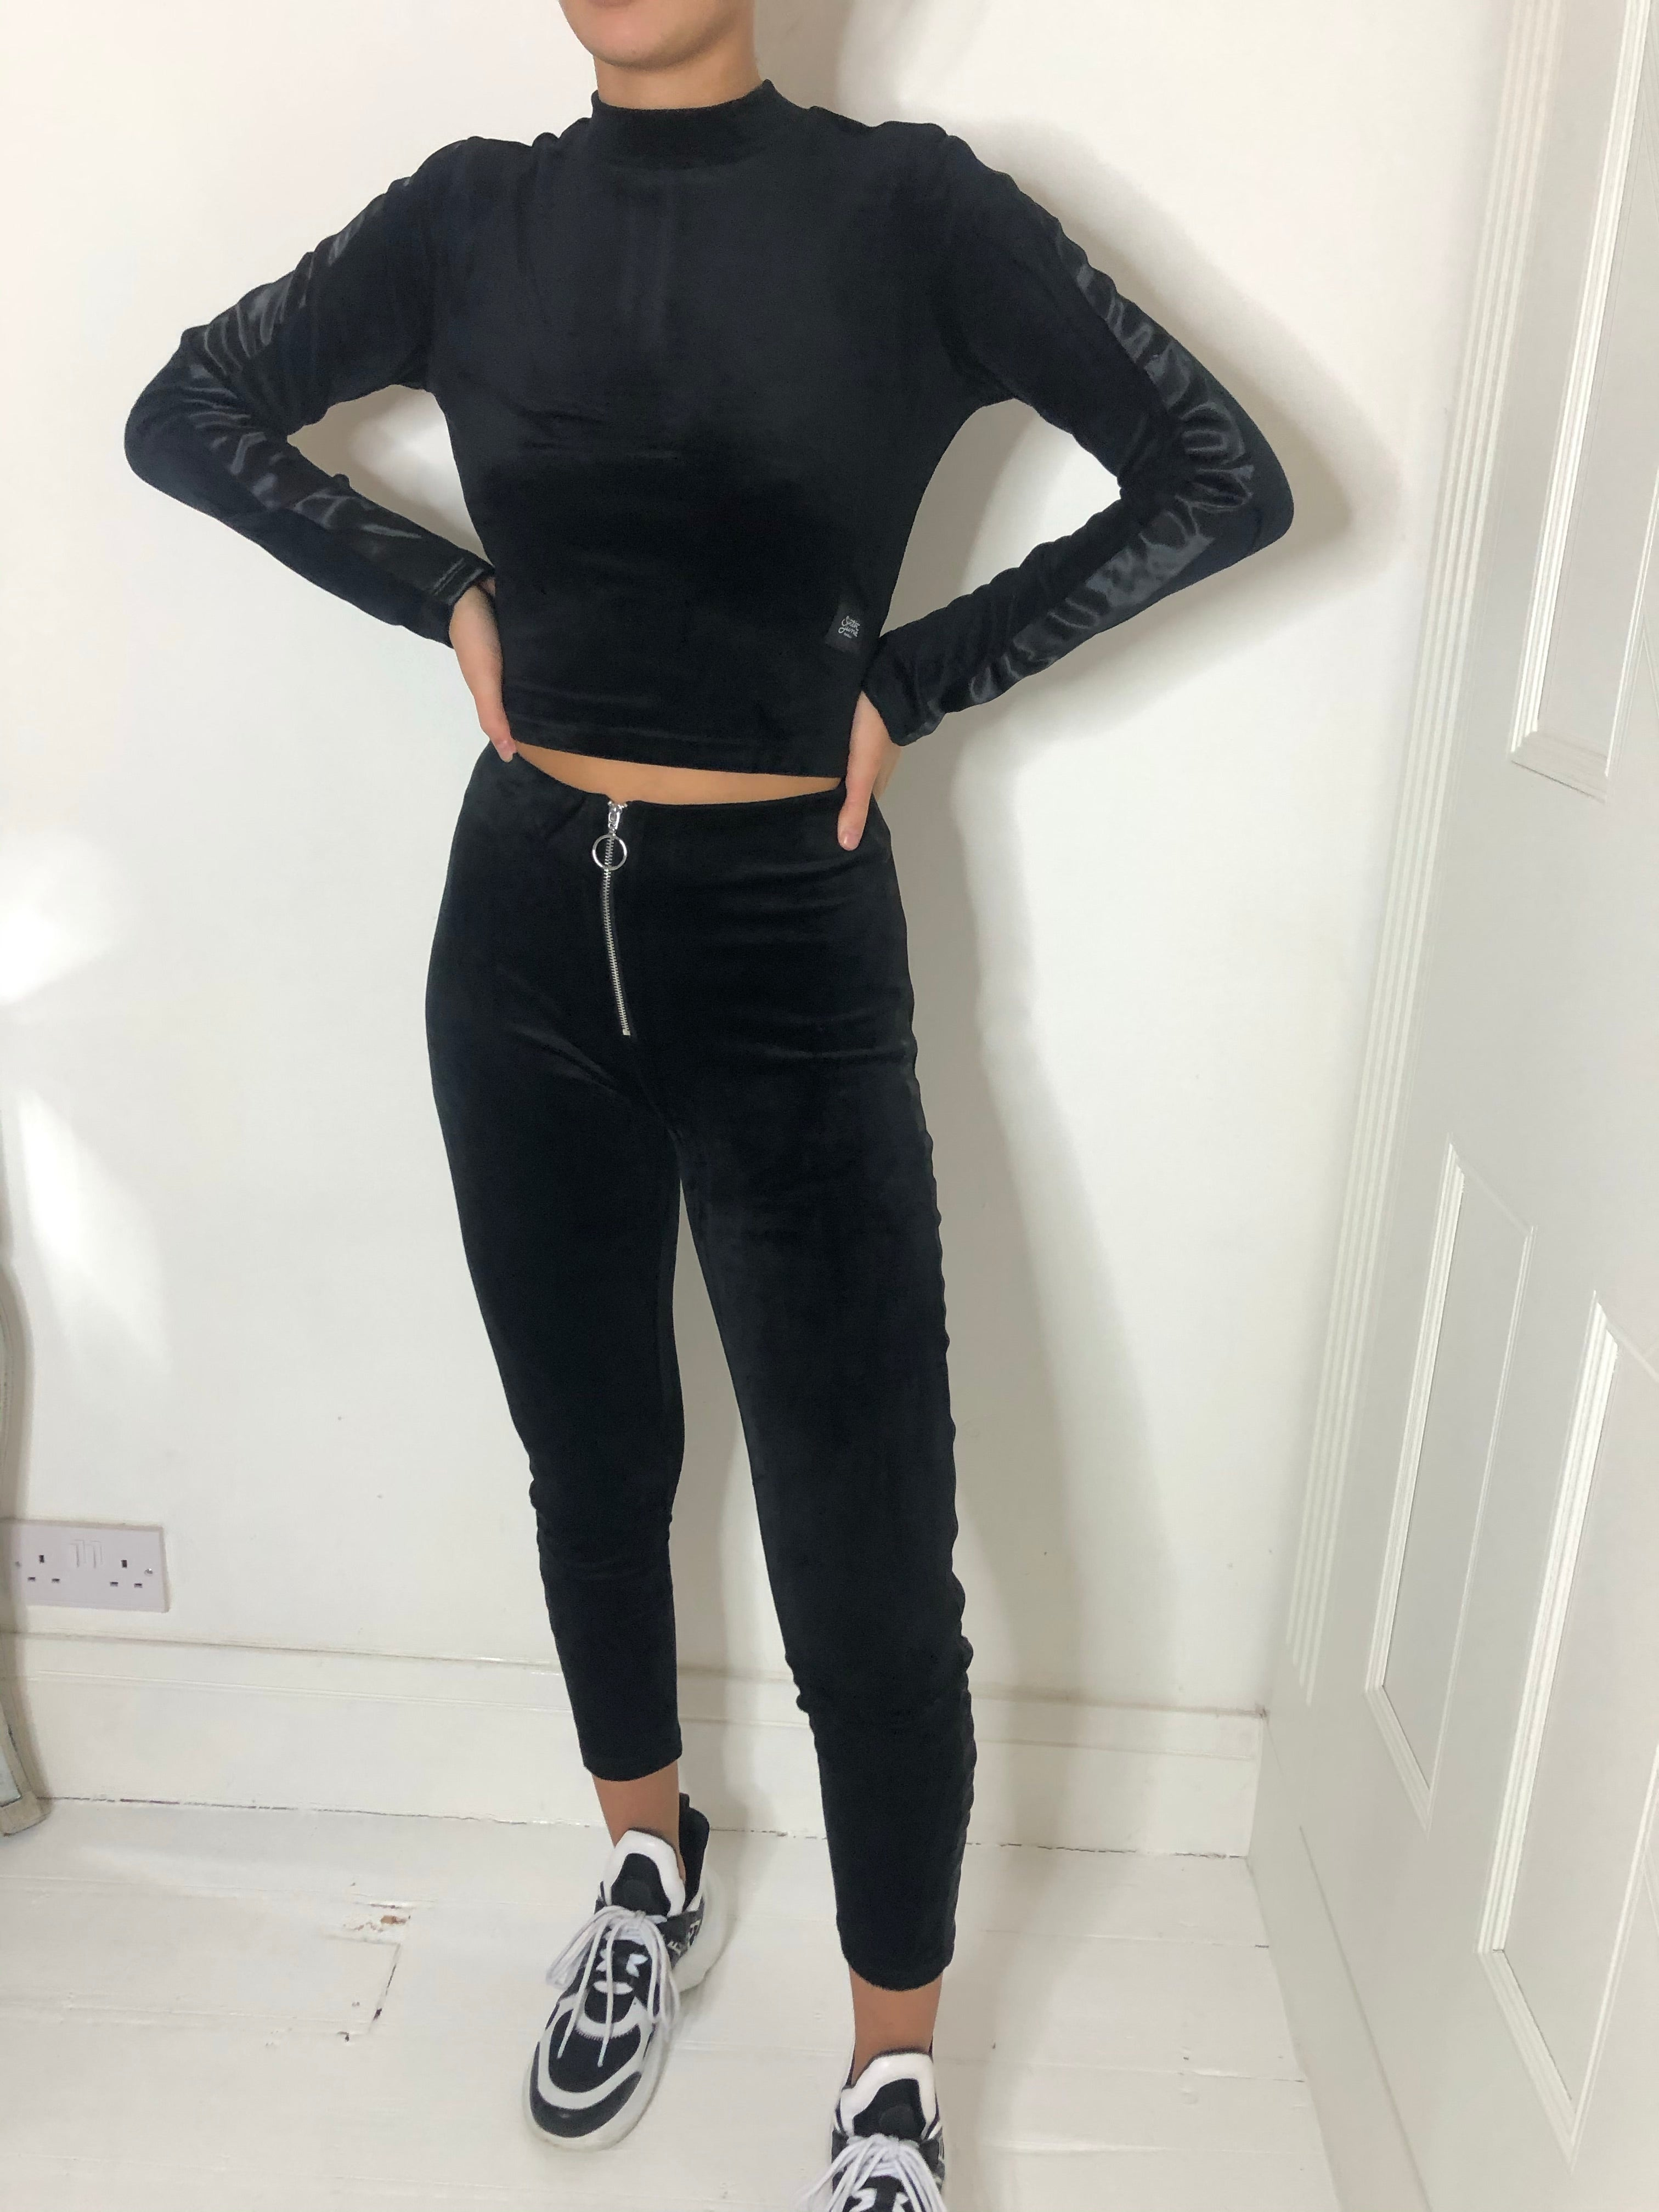 Black velvet leggings and top set